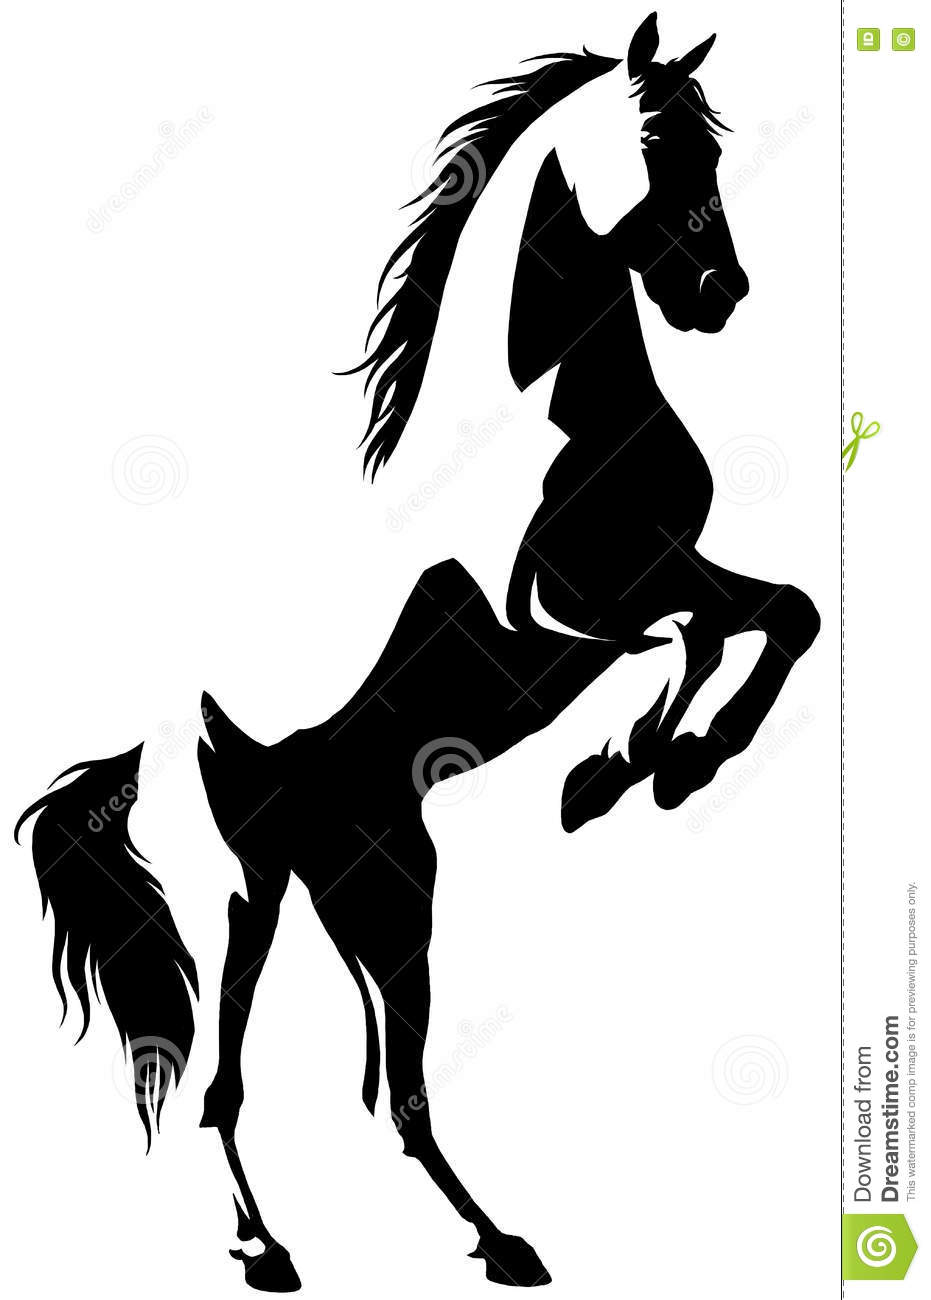 Black And White Linear Paint Draw Horse Illustration Stock Illustration Illustration Of Contour Graphic 78889661